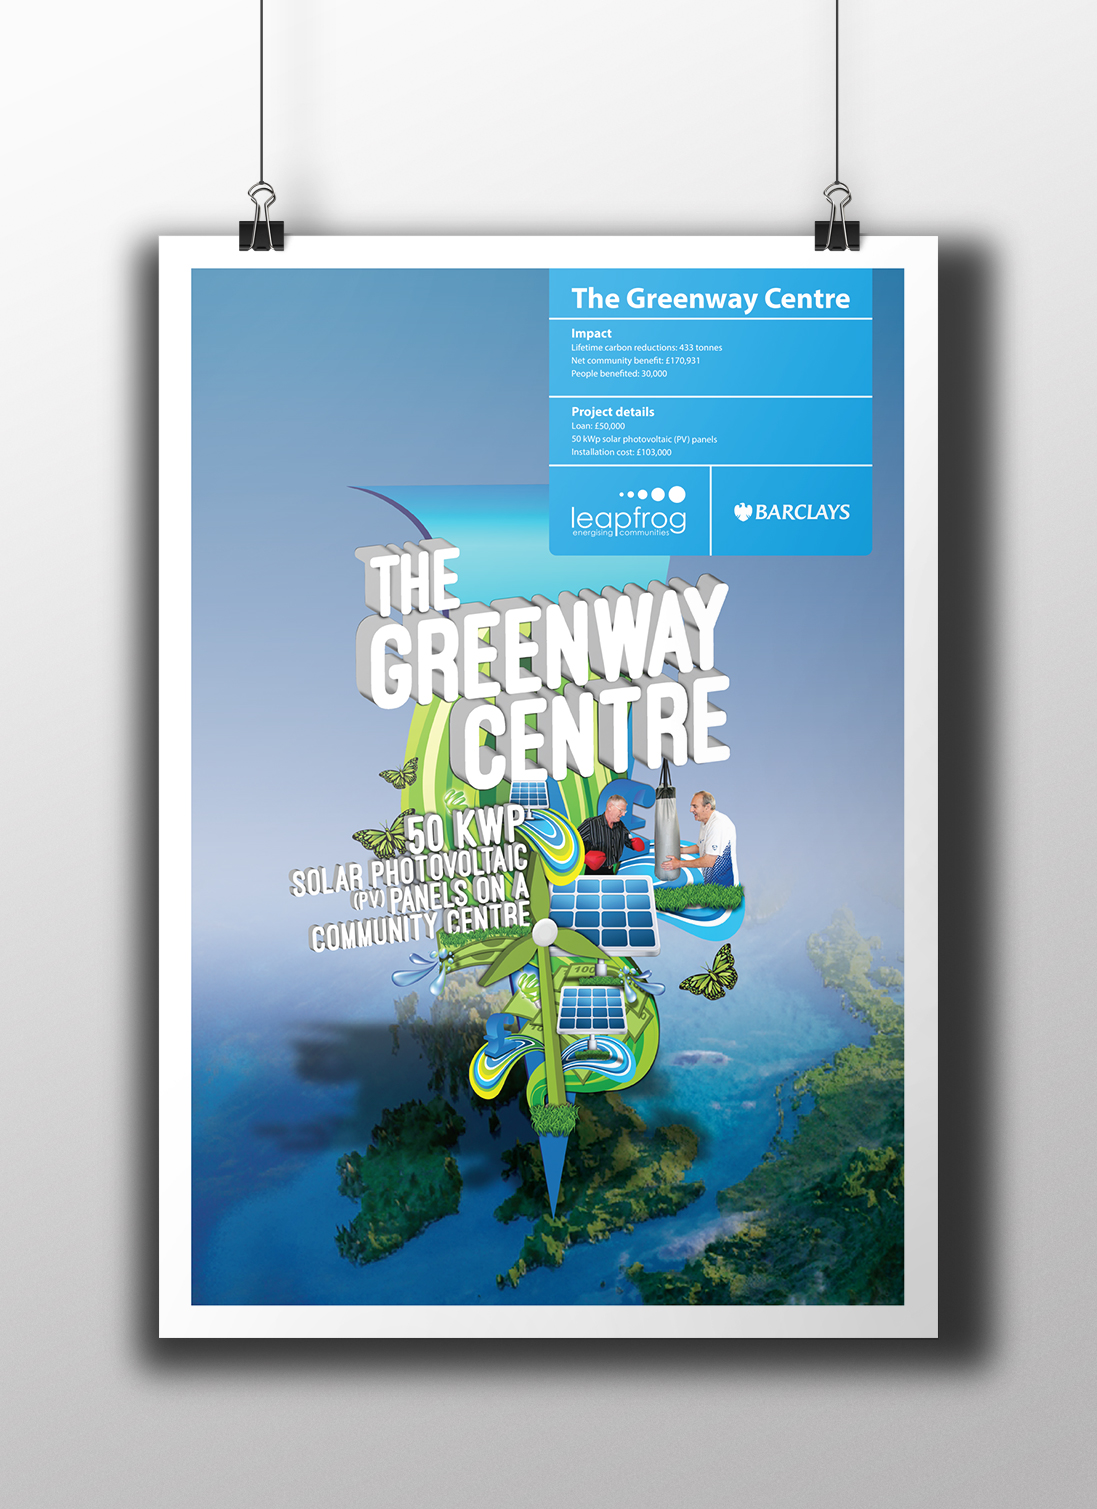 Pureleapfrog + Barclays Greenway Southmead-community energy fund